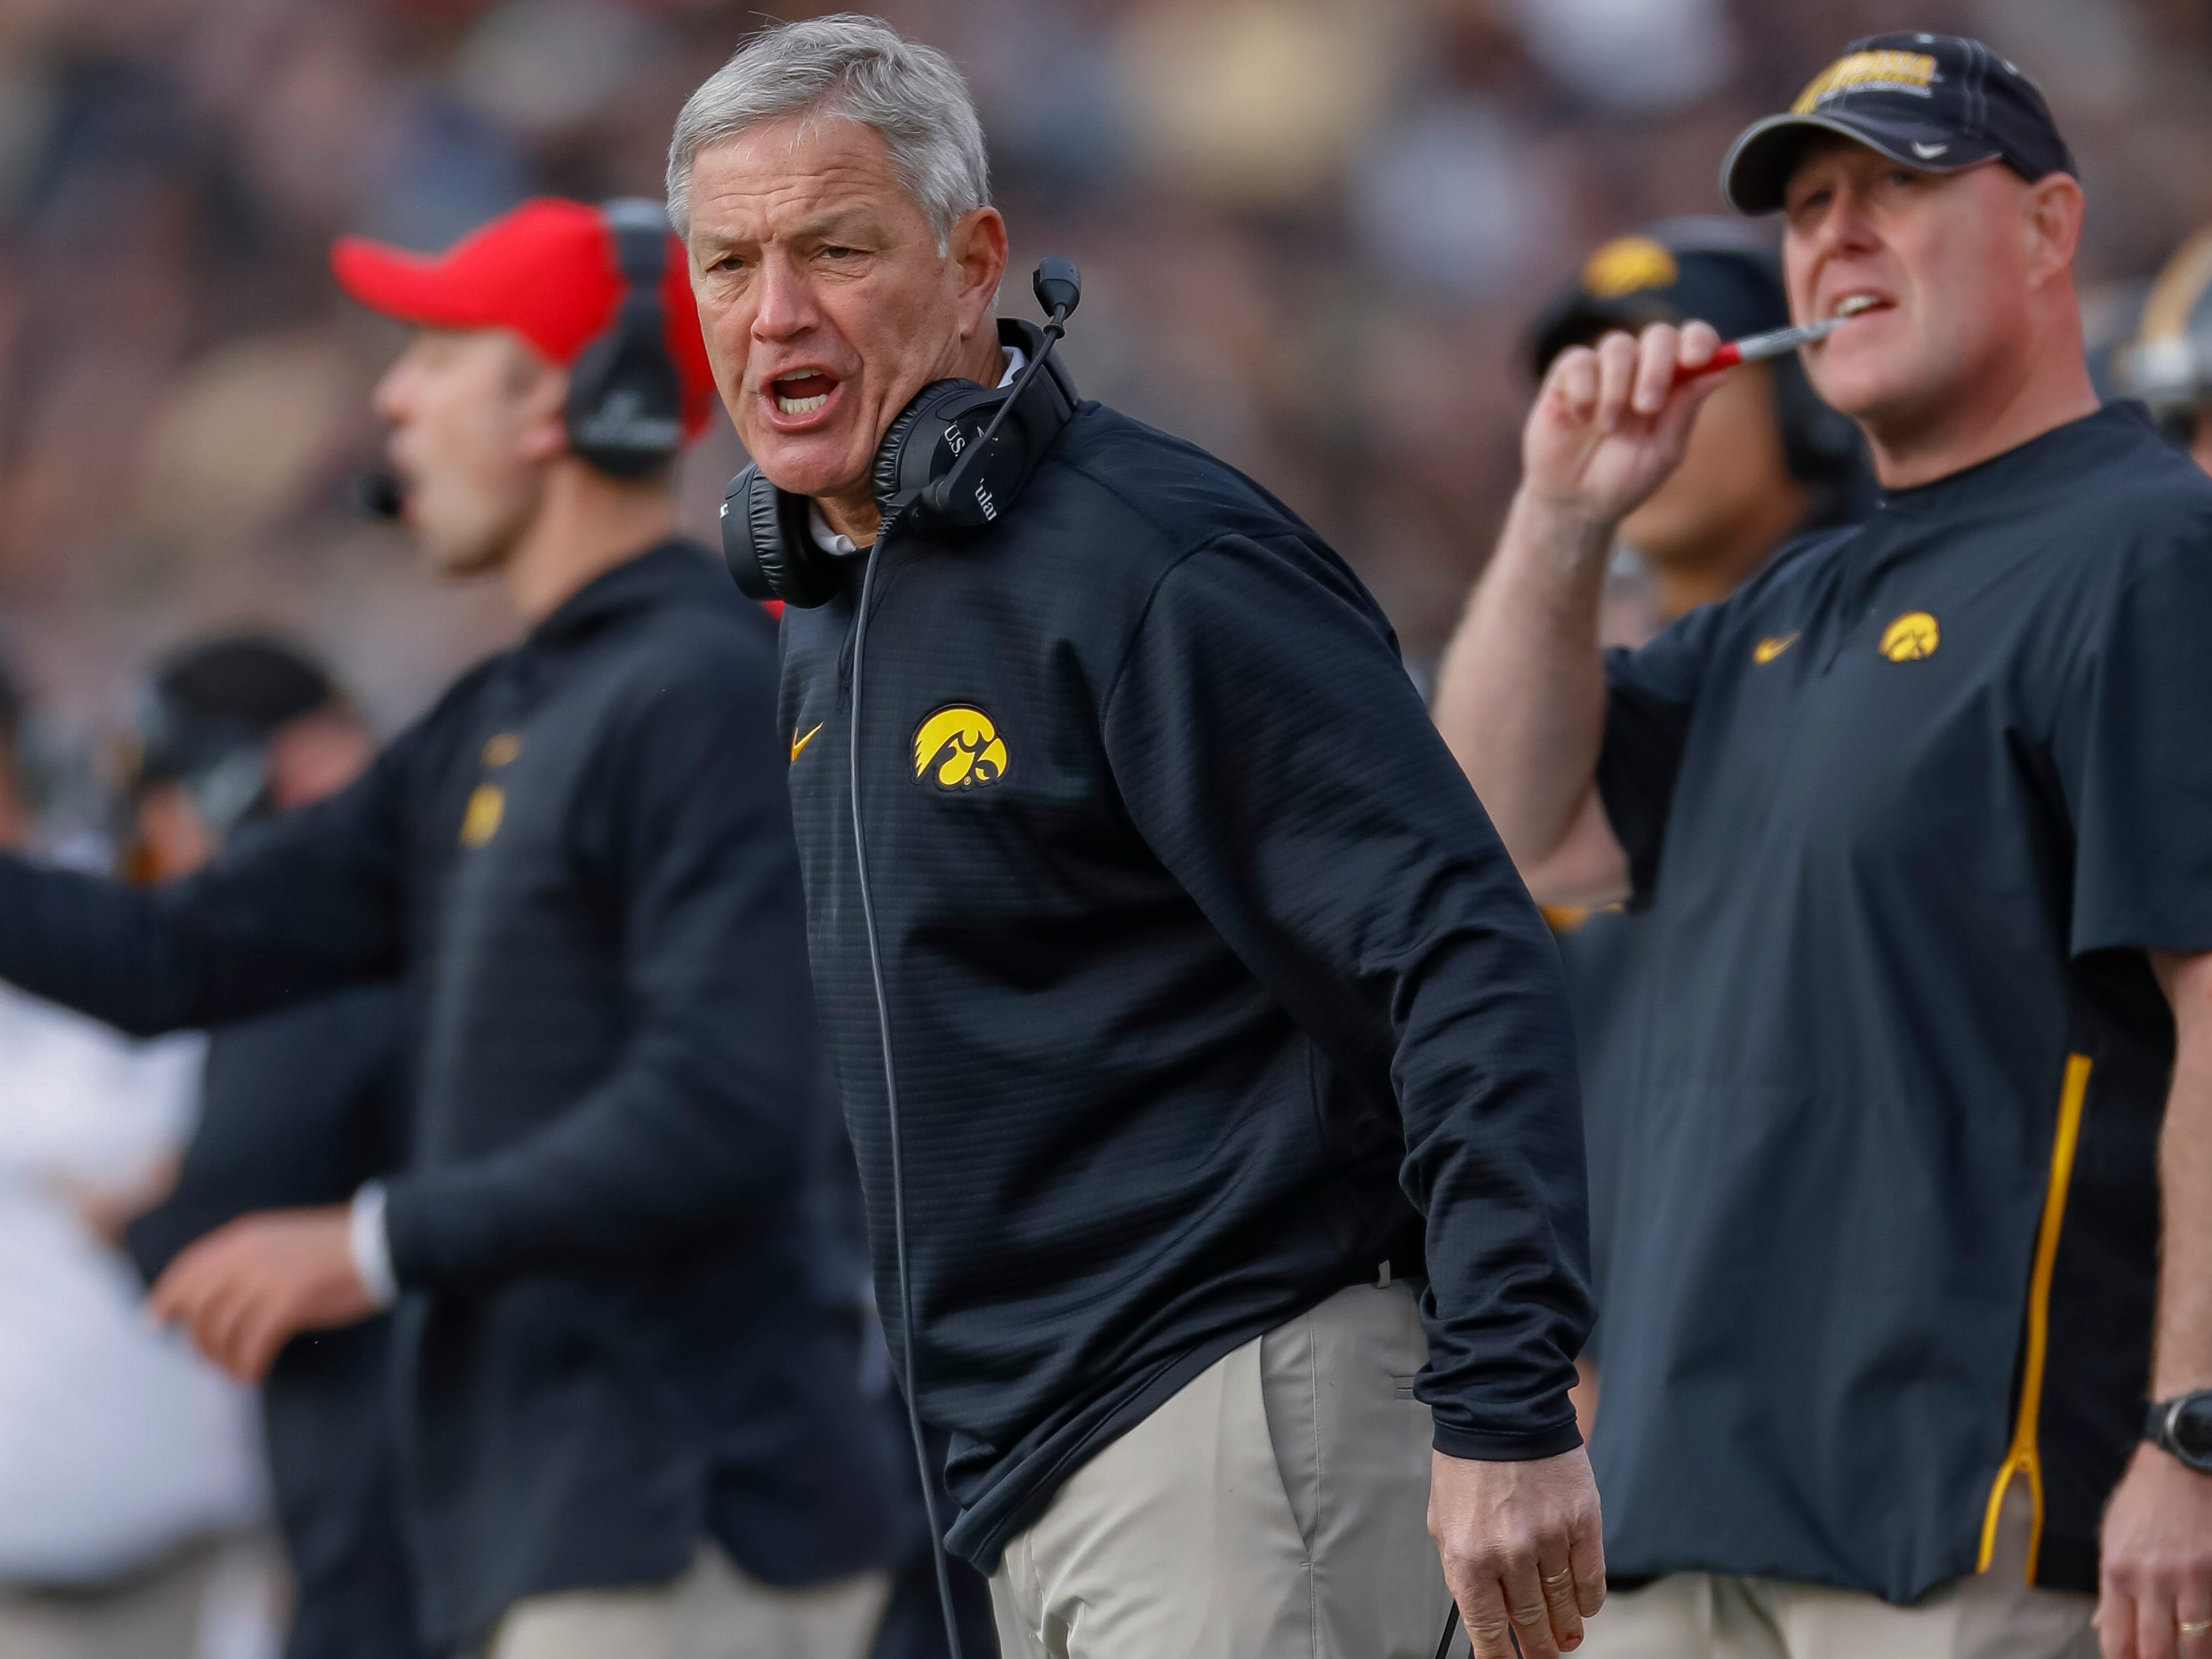 Kirk Ferentz at Iowa, Pat Fitzgerald at Northwestern are coaches with staying power